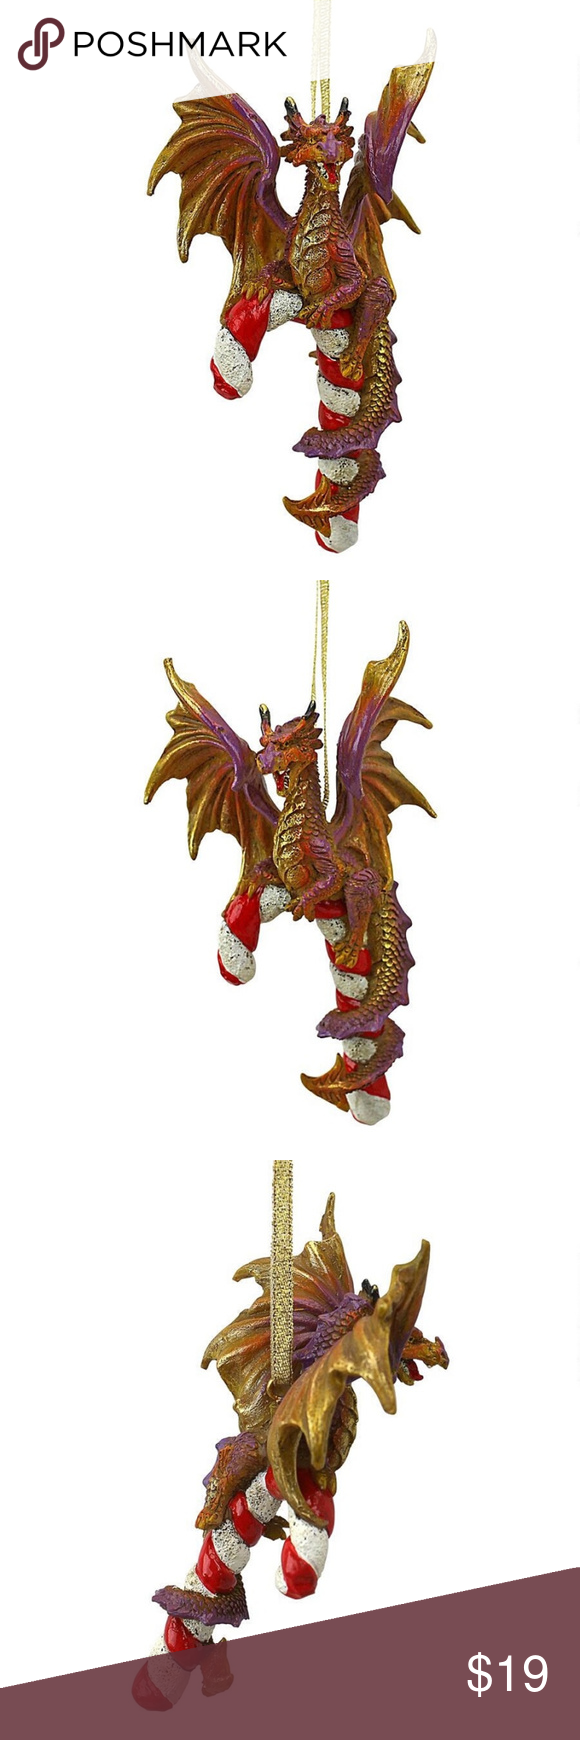 Cane and ABEL The Dragon 2017 Christmas Ornament ...